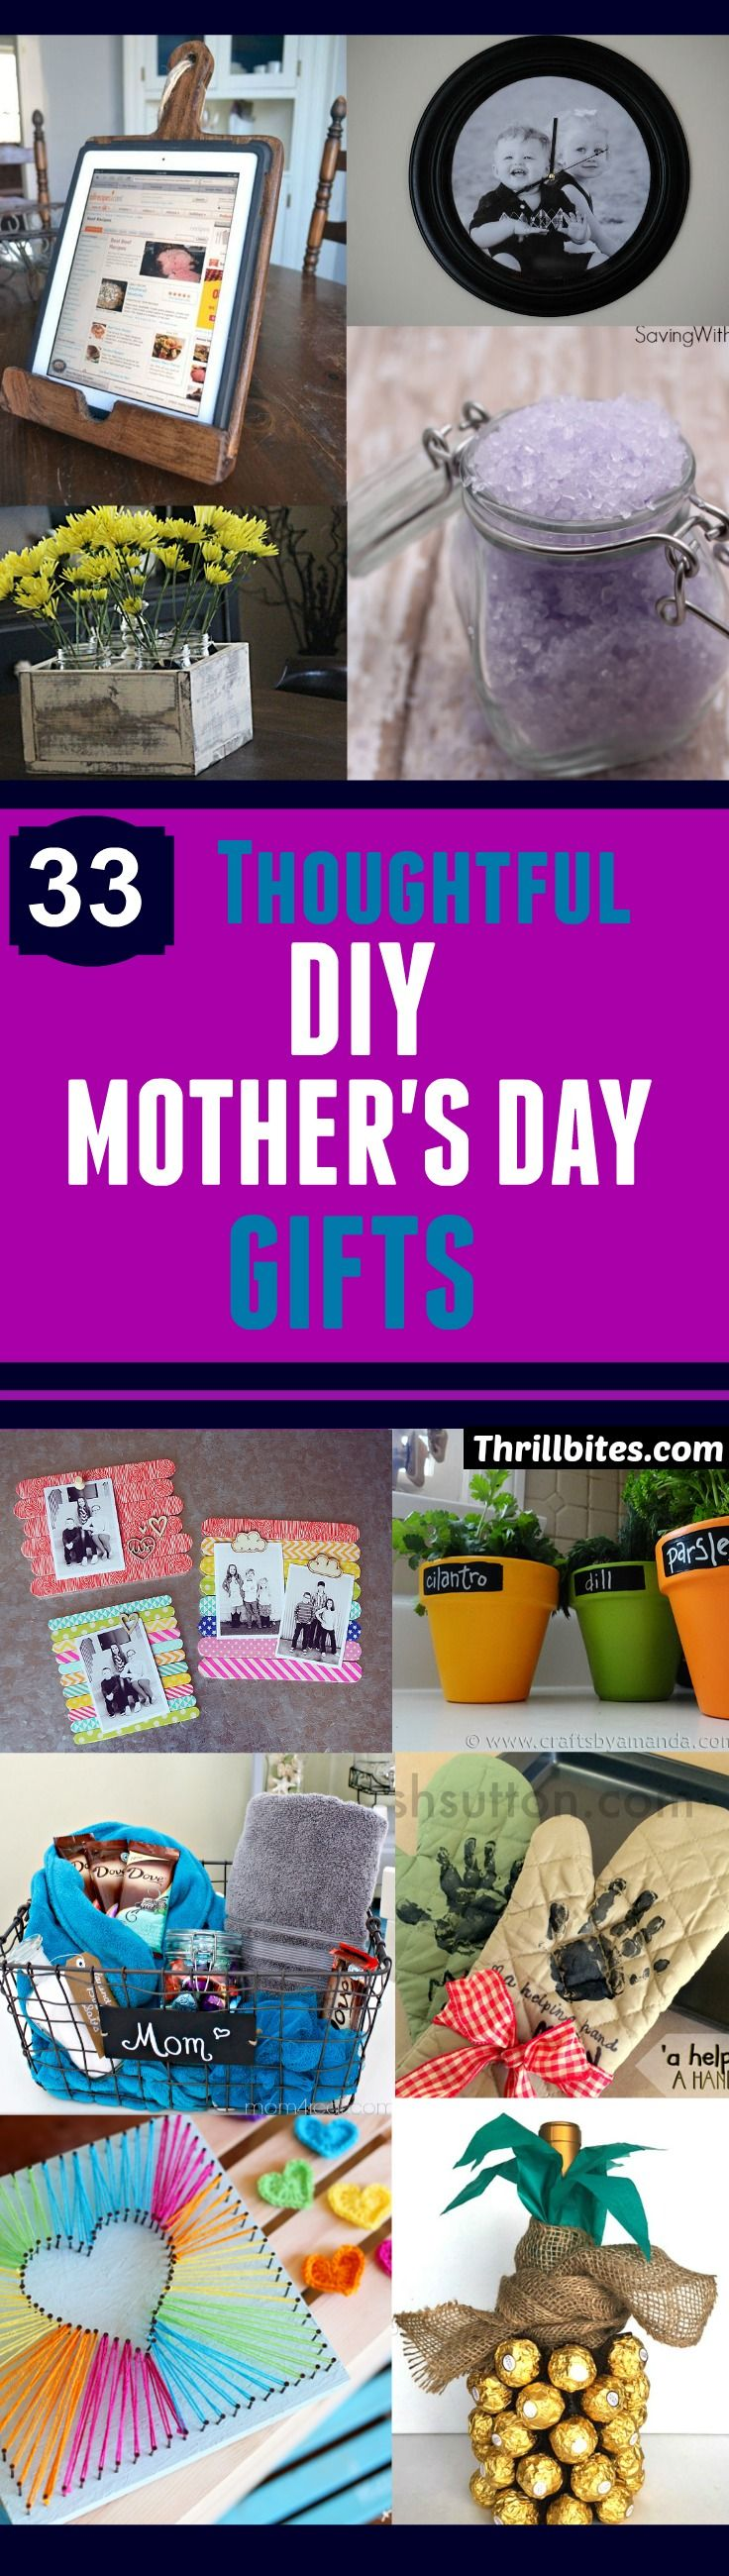 33 Thoughtful DIY Mother's Day Gifts | Homemade gifts for mom, Mother's day diy, Diy gifts for ...